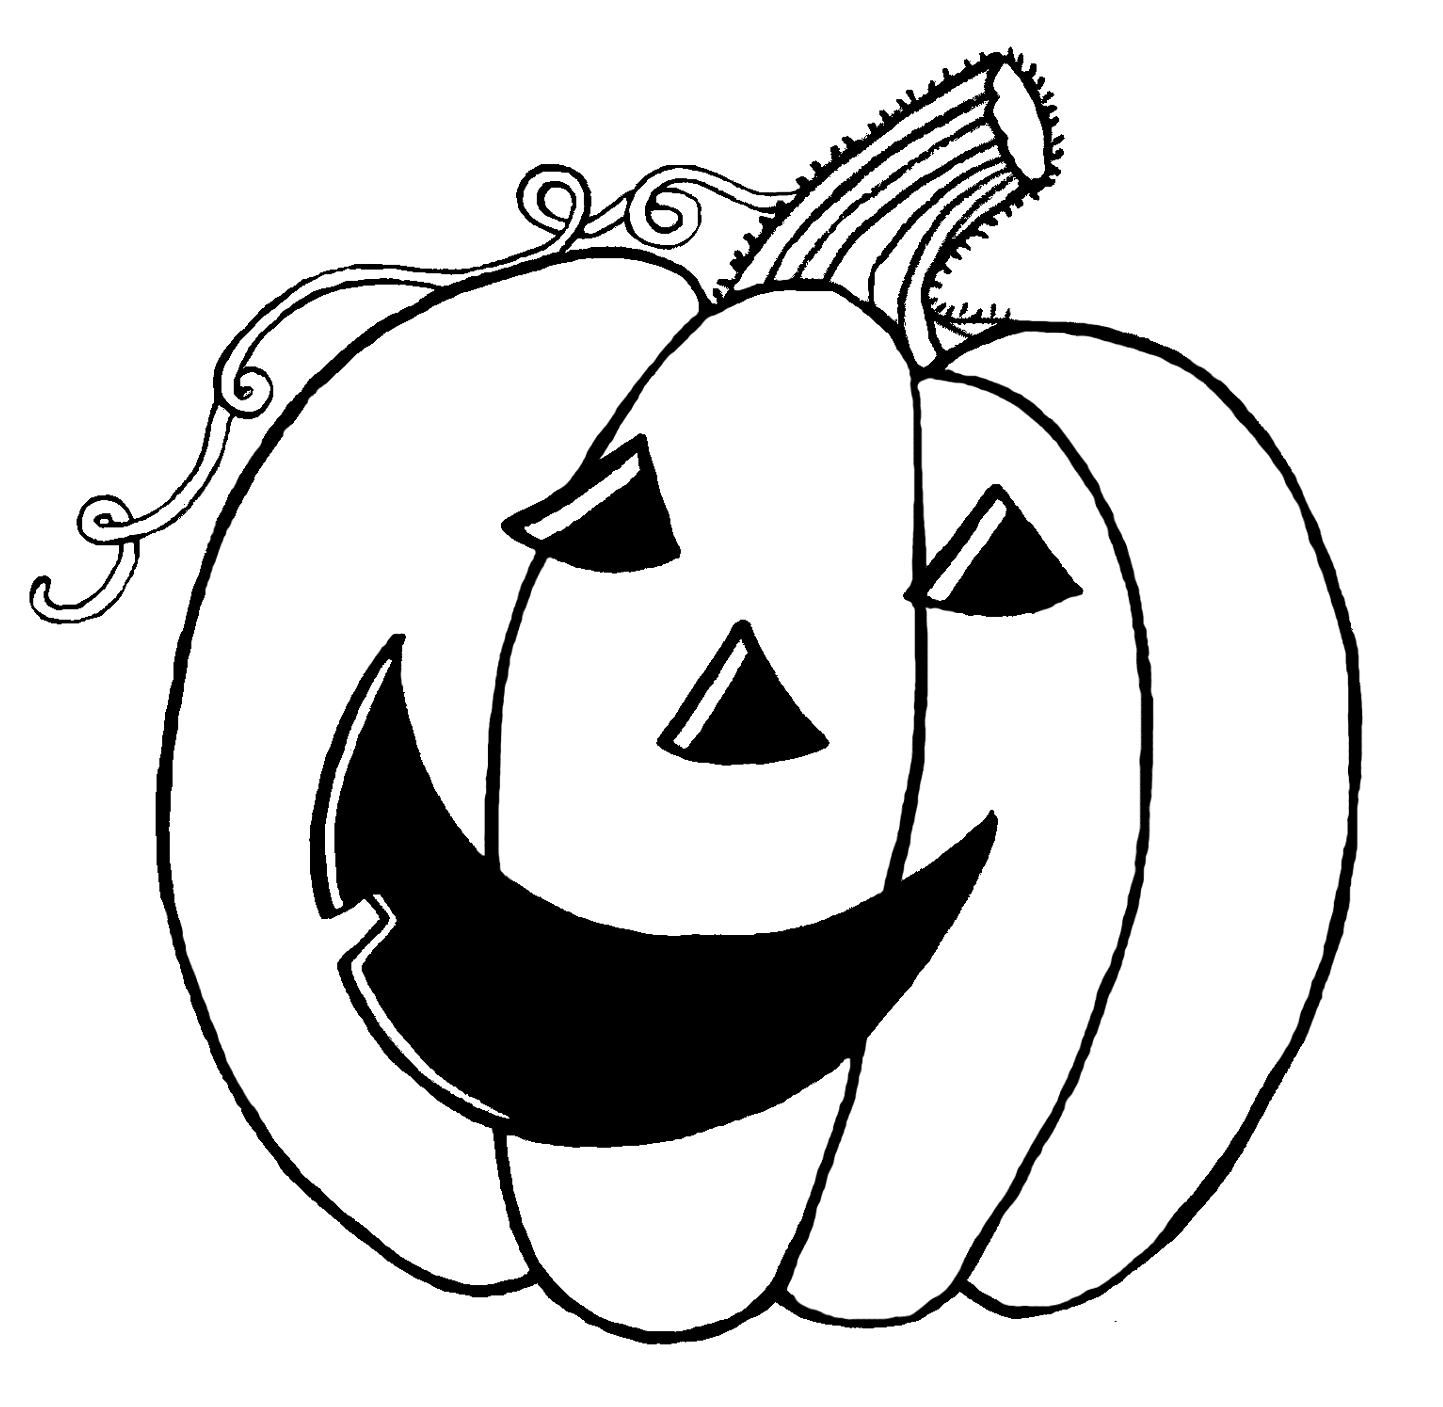 lilac   lavender our jack o lantern scarecrow clipart pinecrest scarecrow clip art using m&m's candy